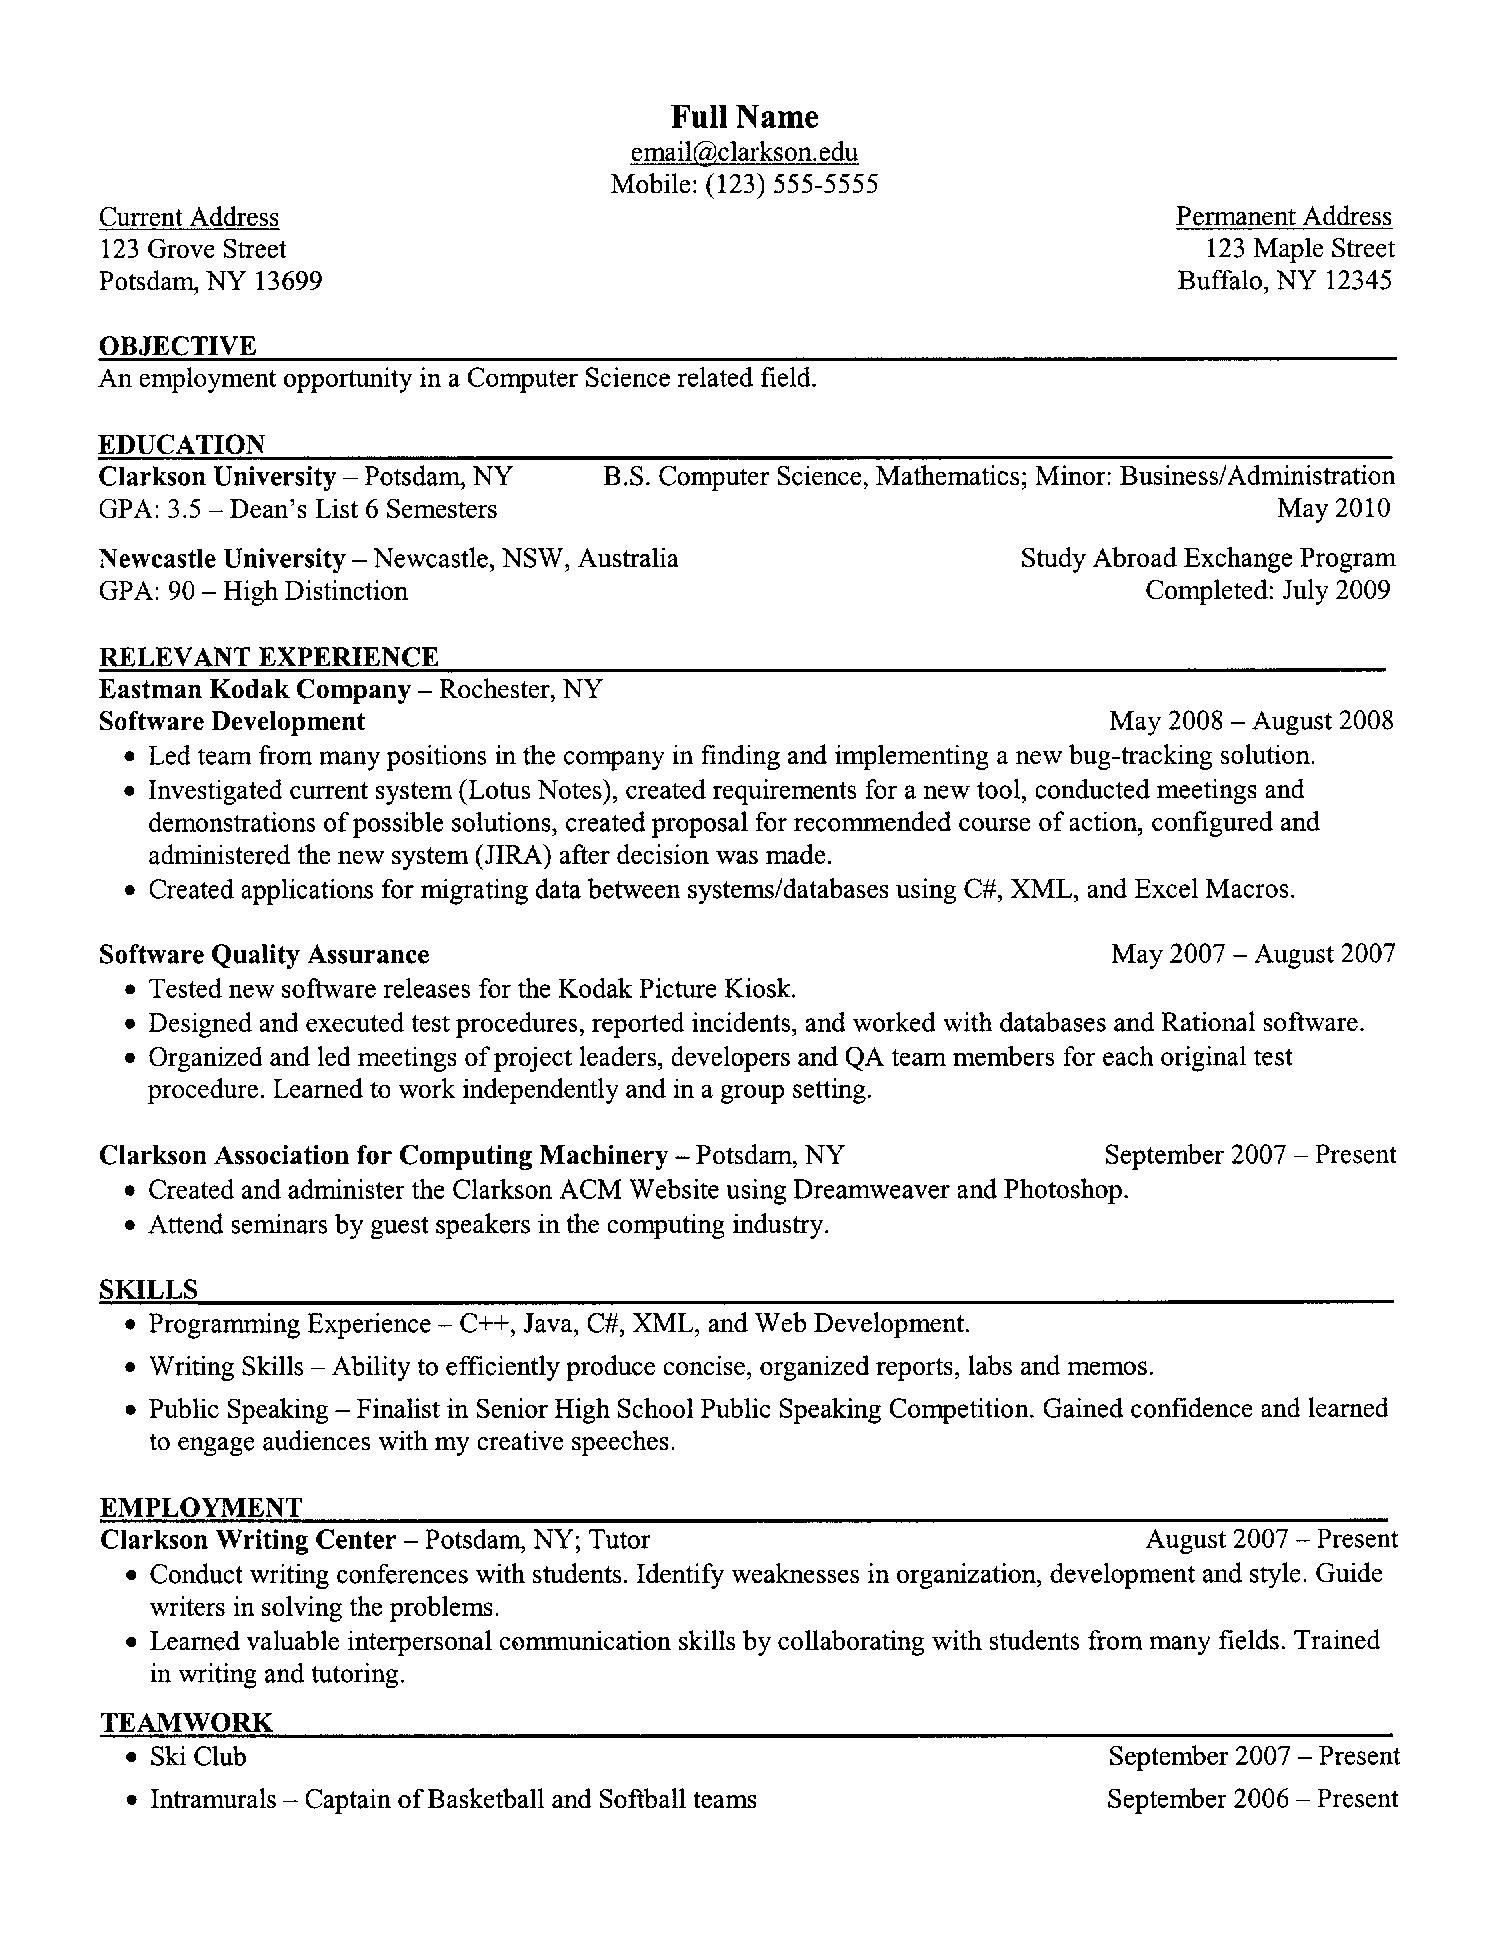 free resume templates computer science skills college examples template theatrical Resume Computer Science Resume Template